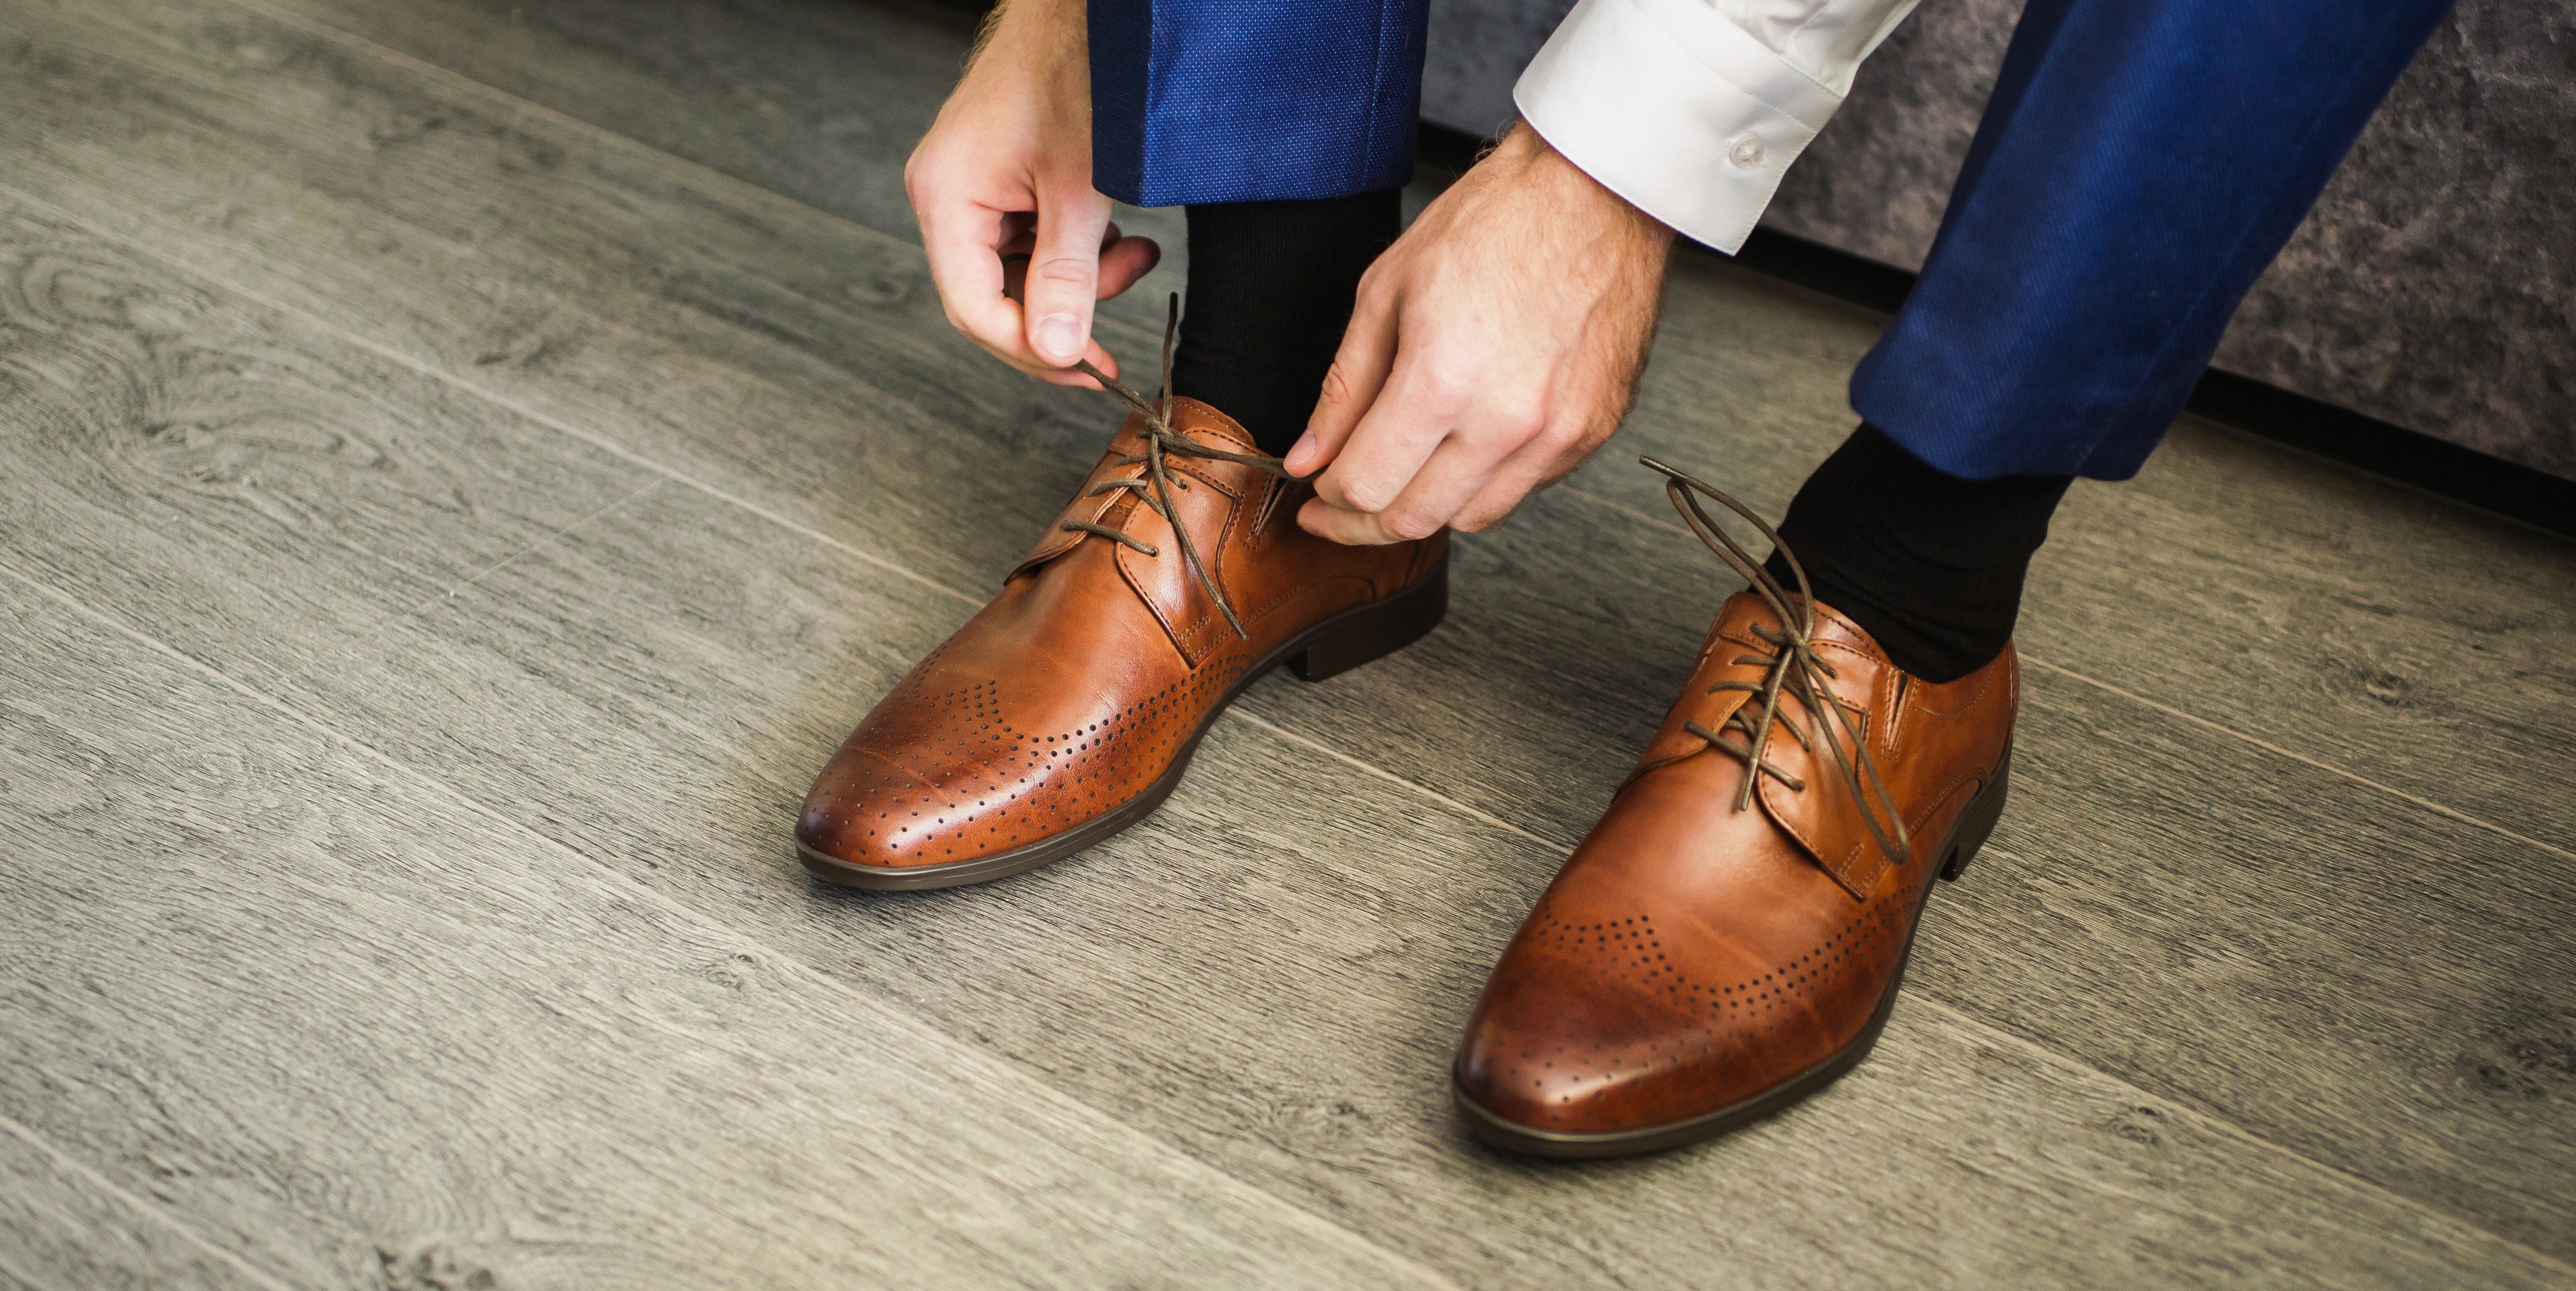 iiiphevgeniy by Shutterstock, a man in a suit ties shoelaces of brown shoes